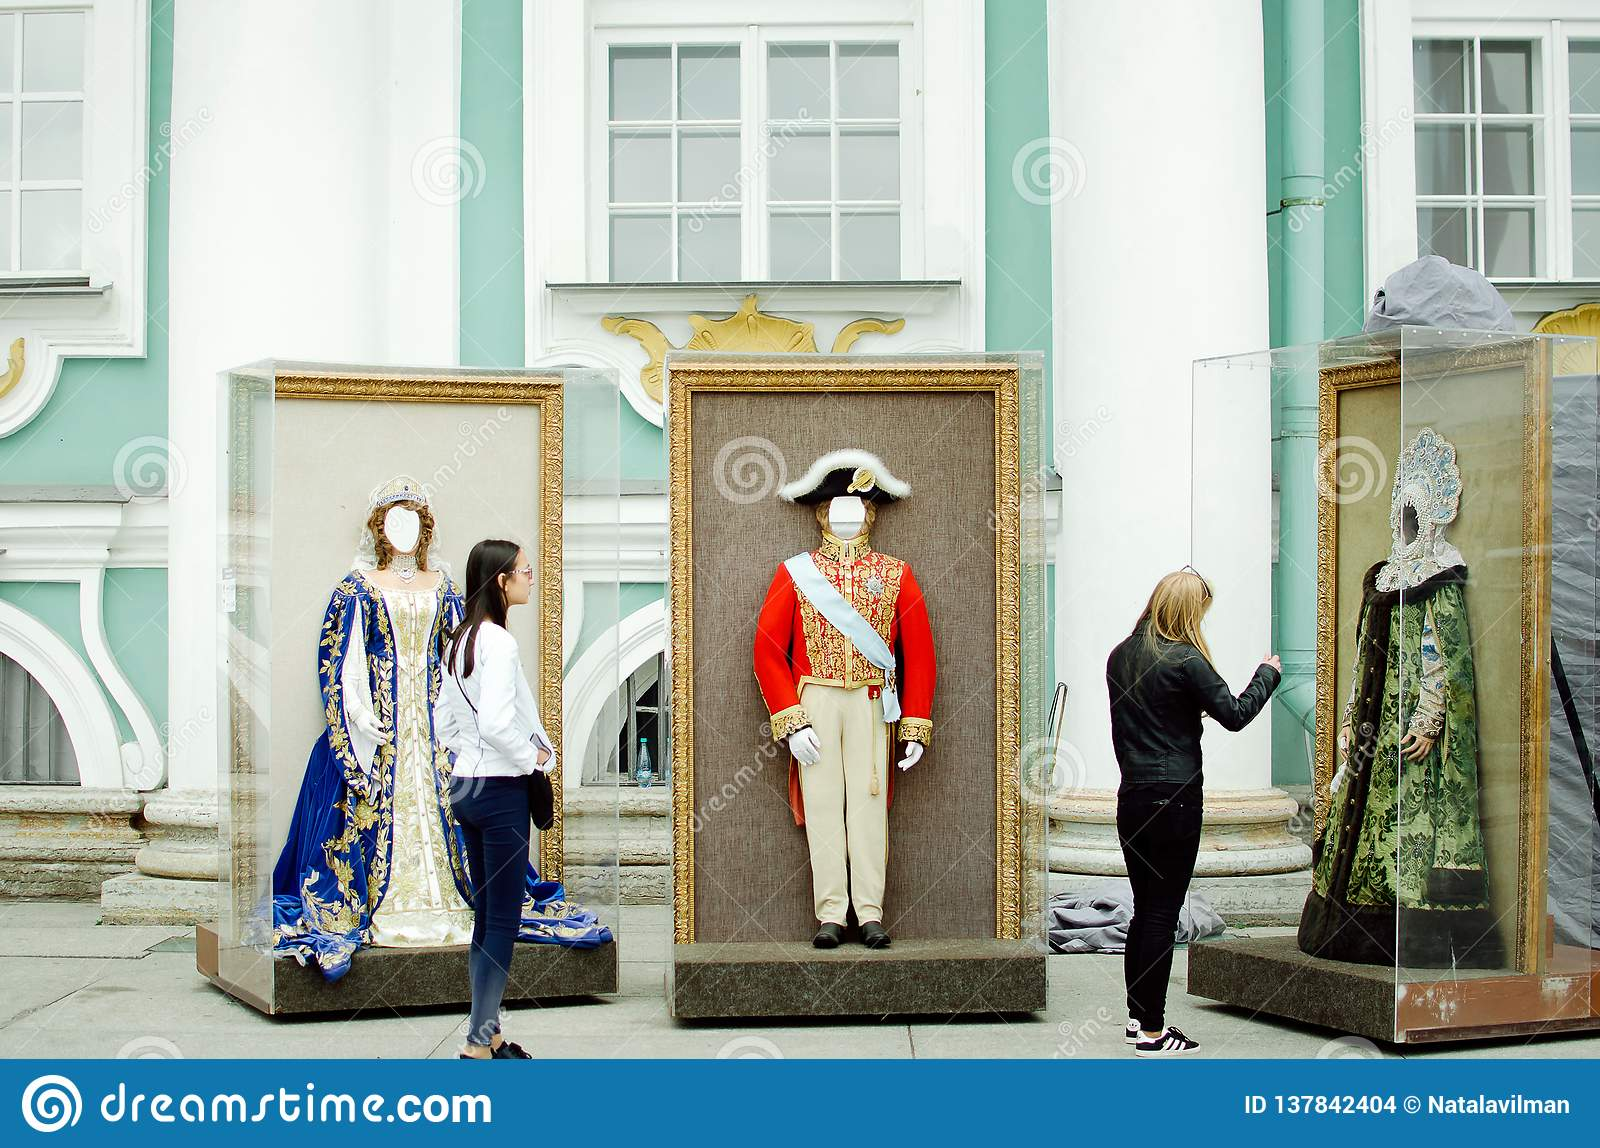 Entertainment for tourists in St. Petersburg. Photographing in historical museum